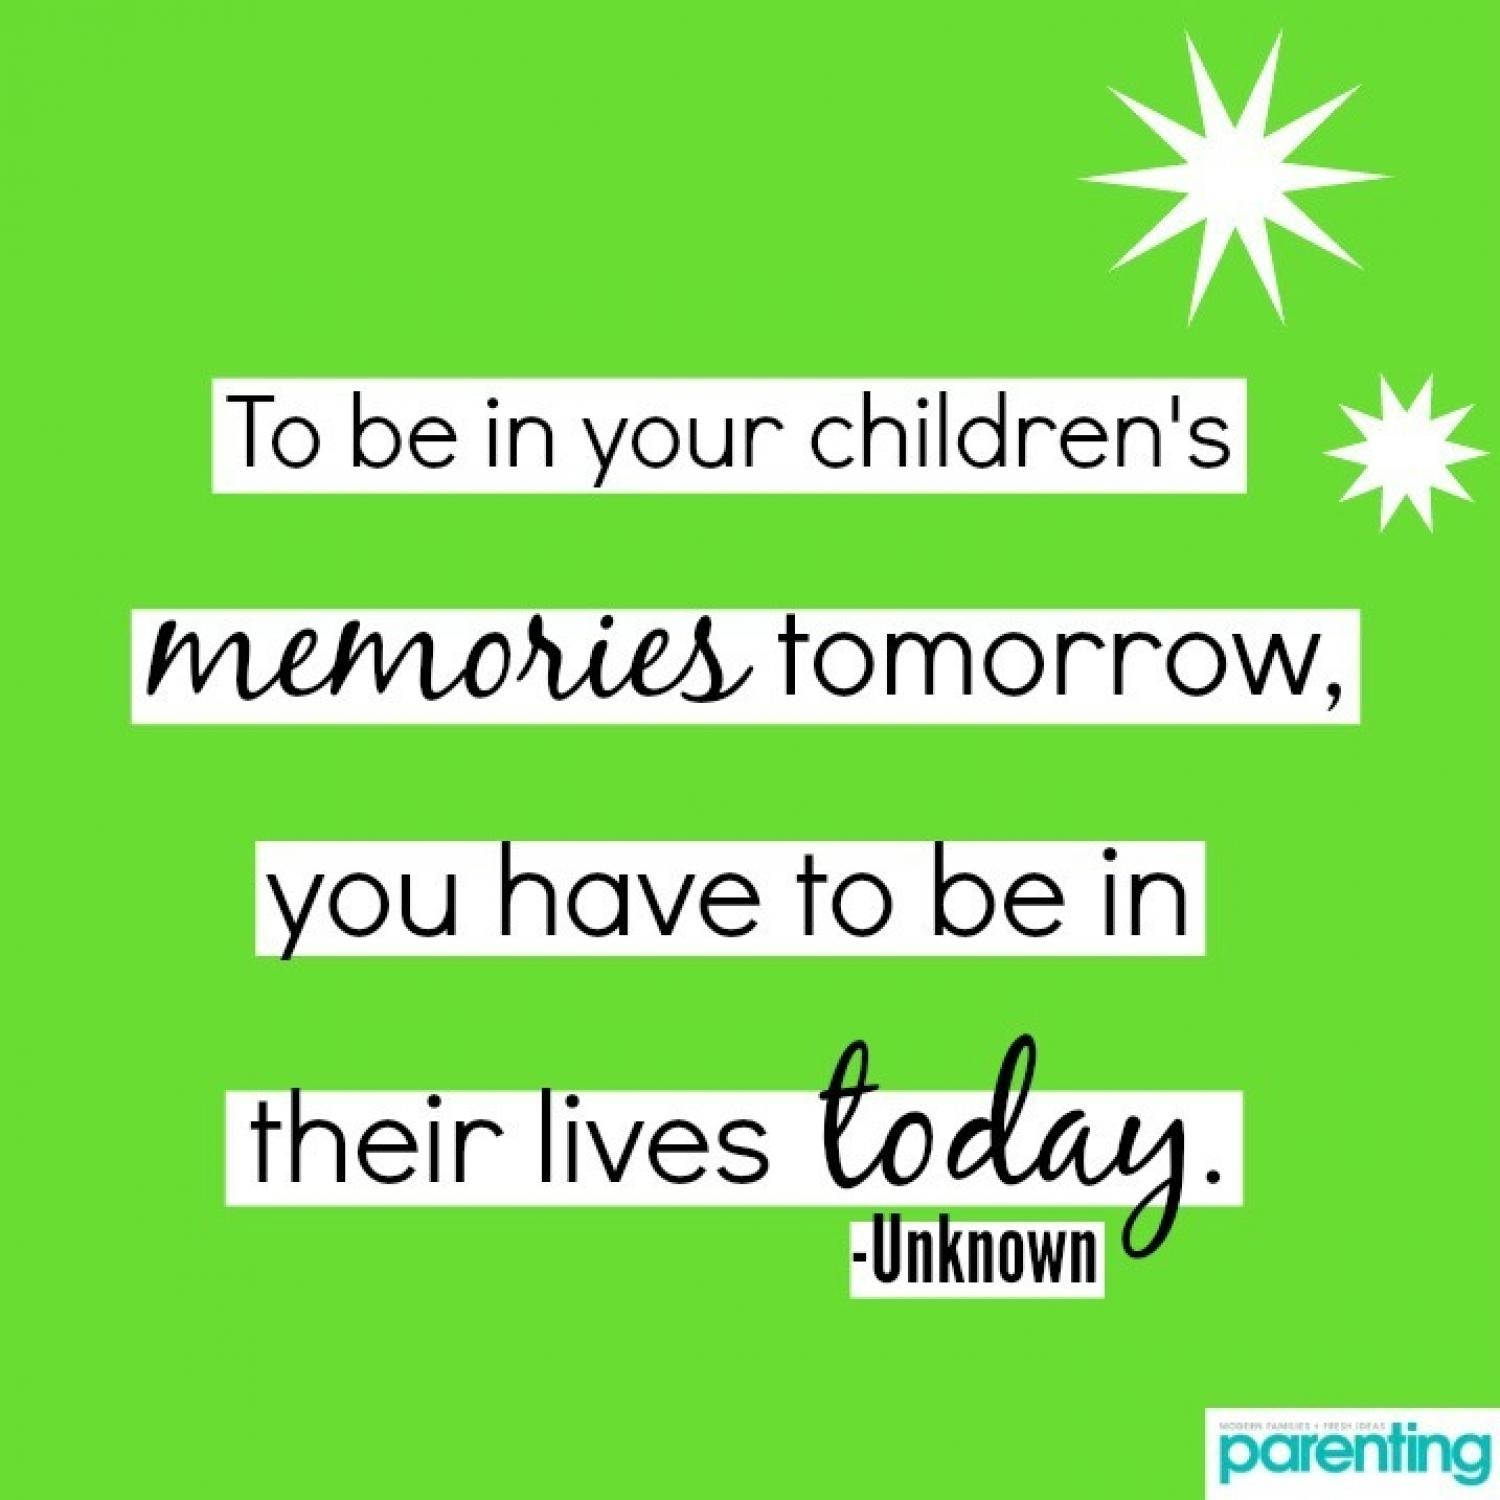 Quotes For Kids About Life 17 Amazing Parenting Quotes That Will Make You A Better Parent